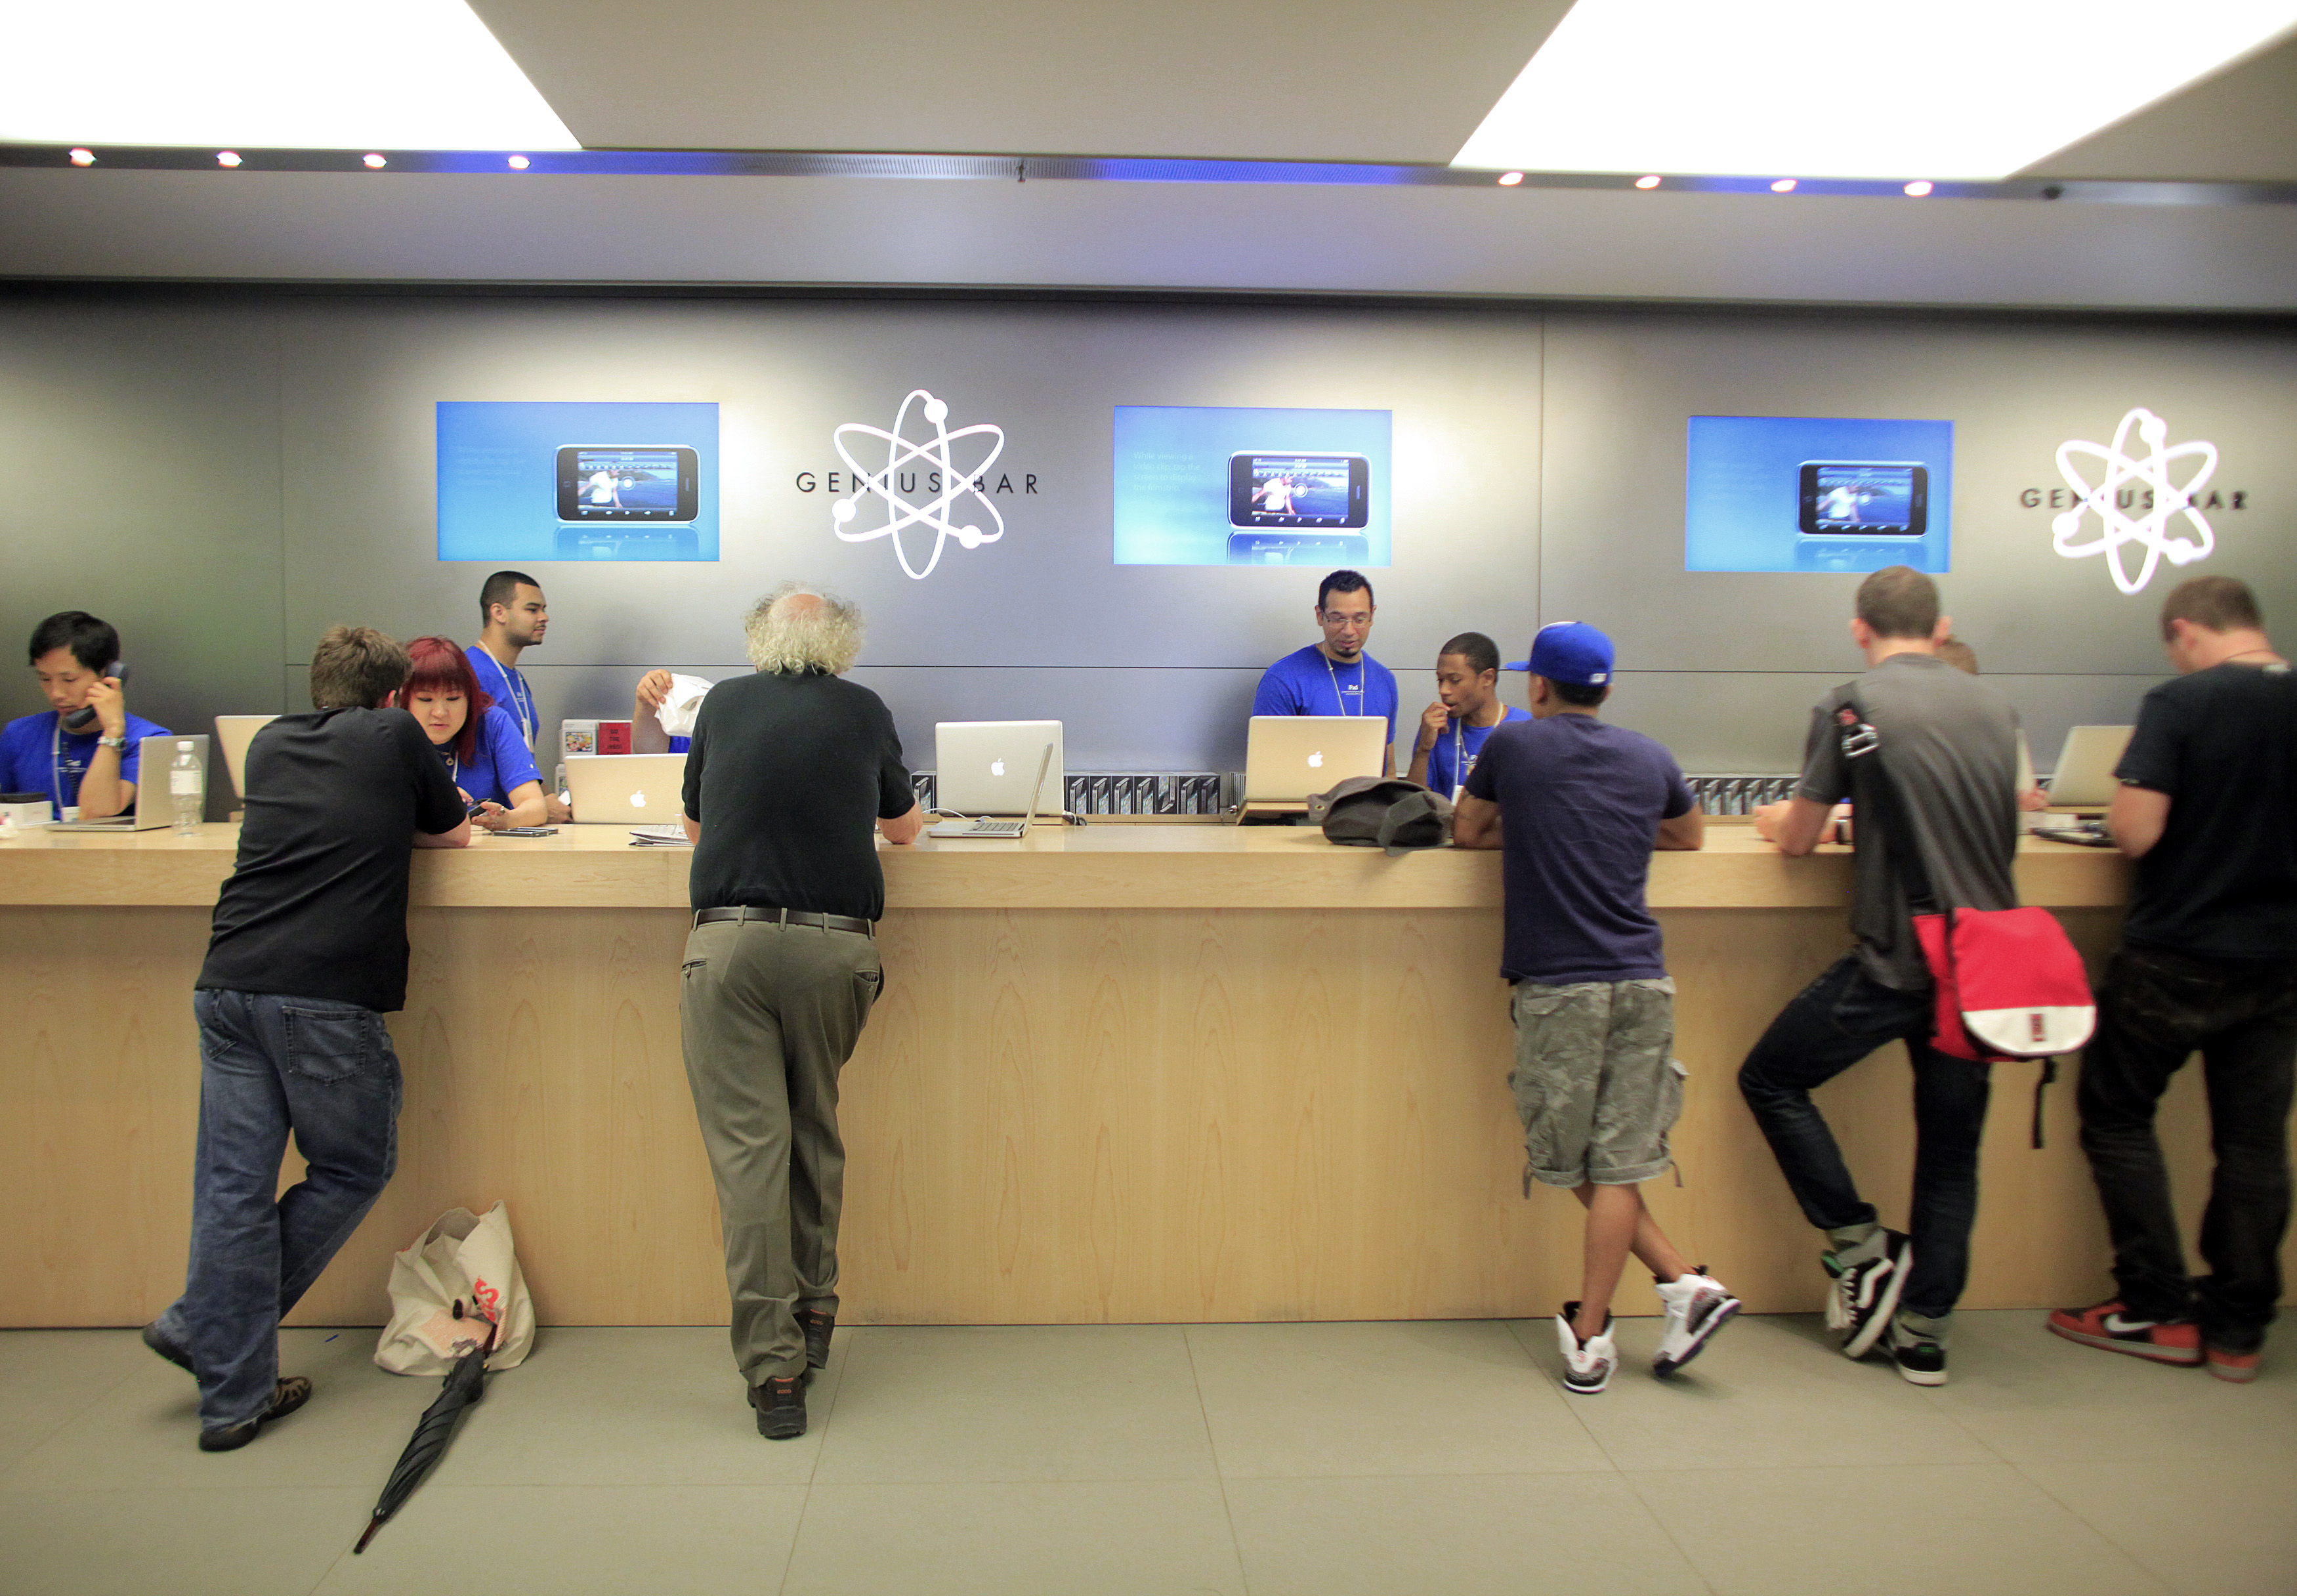 Apple Inc. Will Overhaul Store Genius Bar By Dumping ... - photo#11